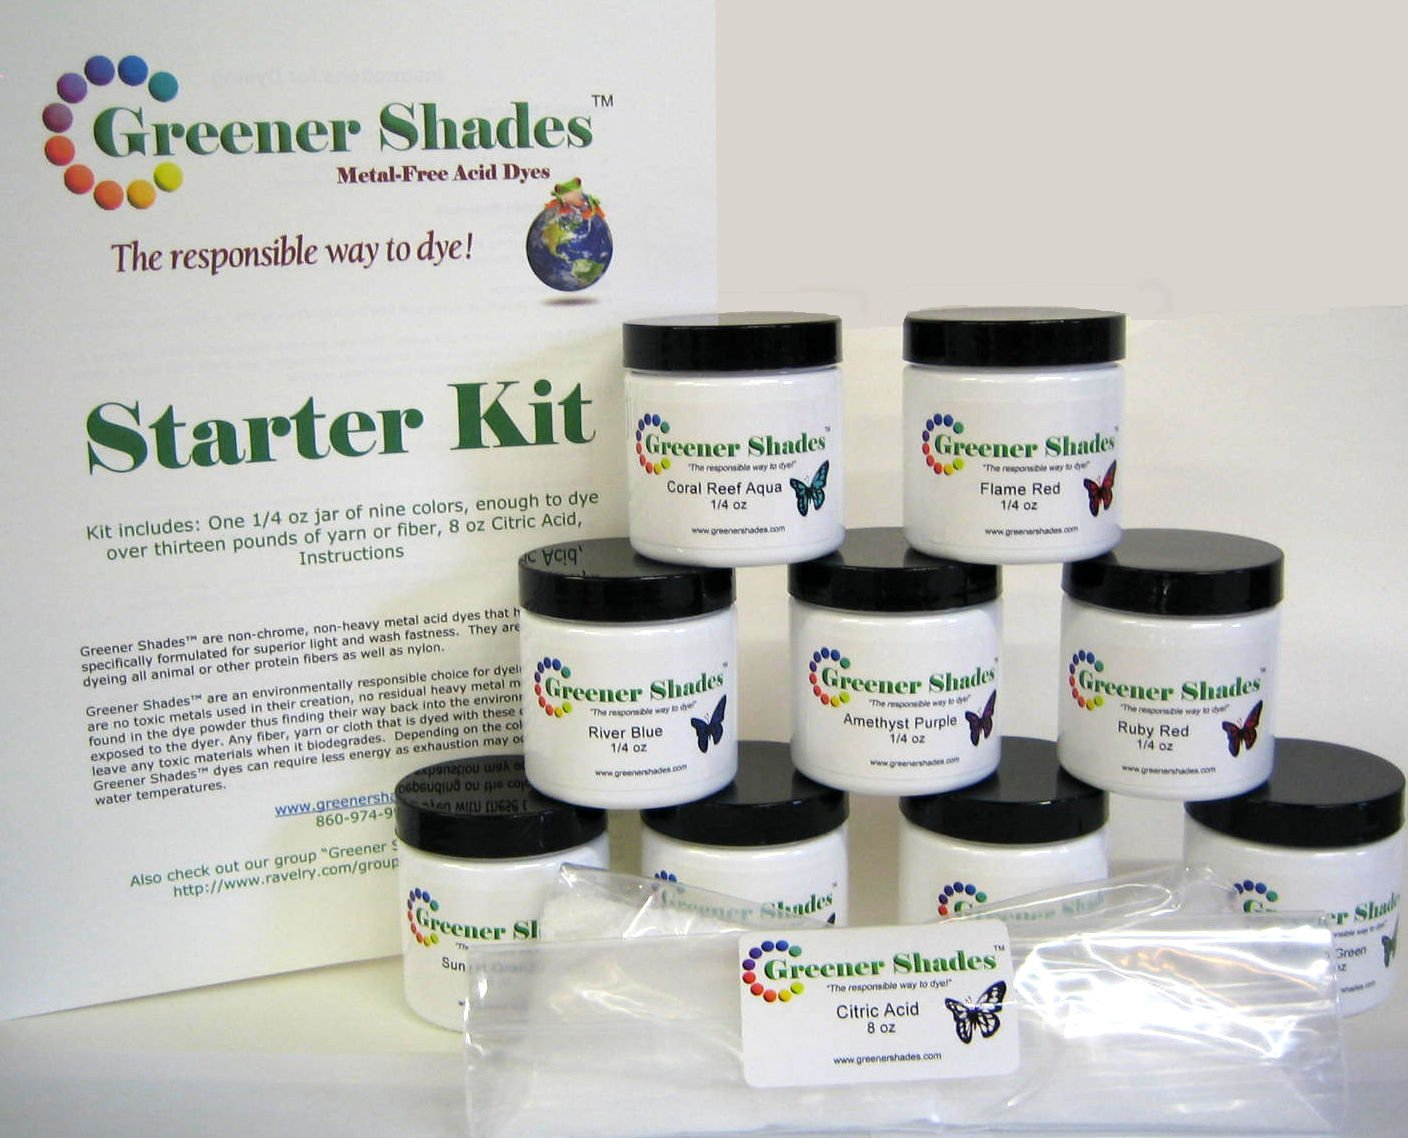 Greener Shades Starter Kit by Greener Shades